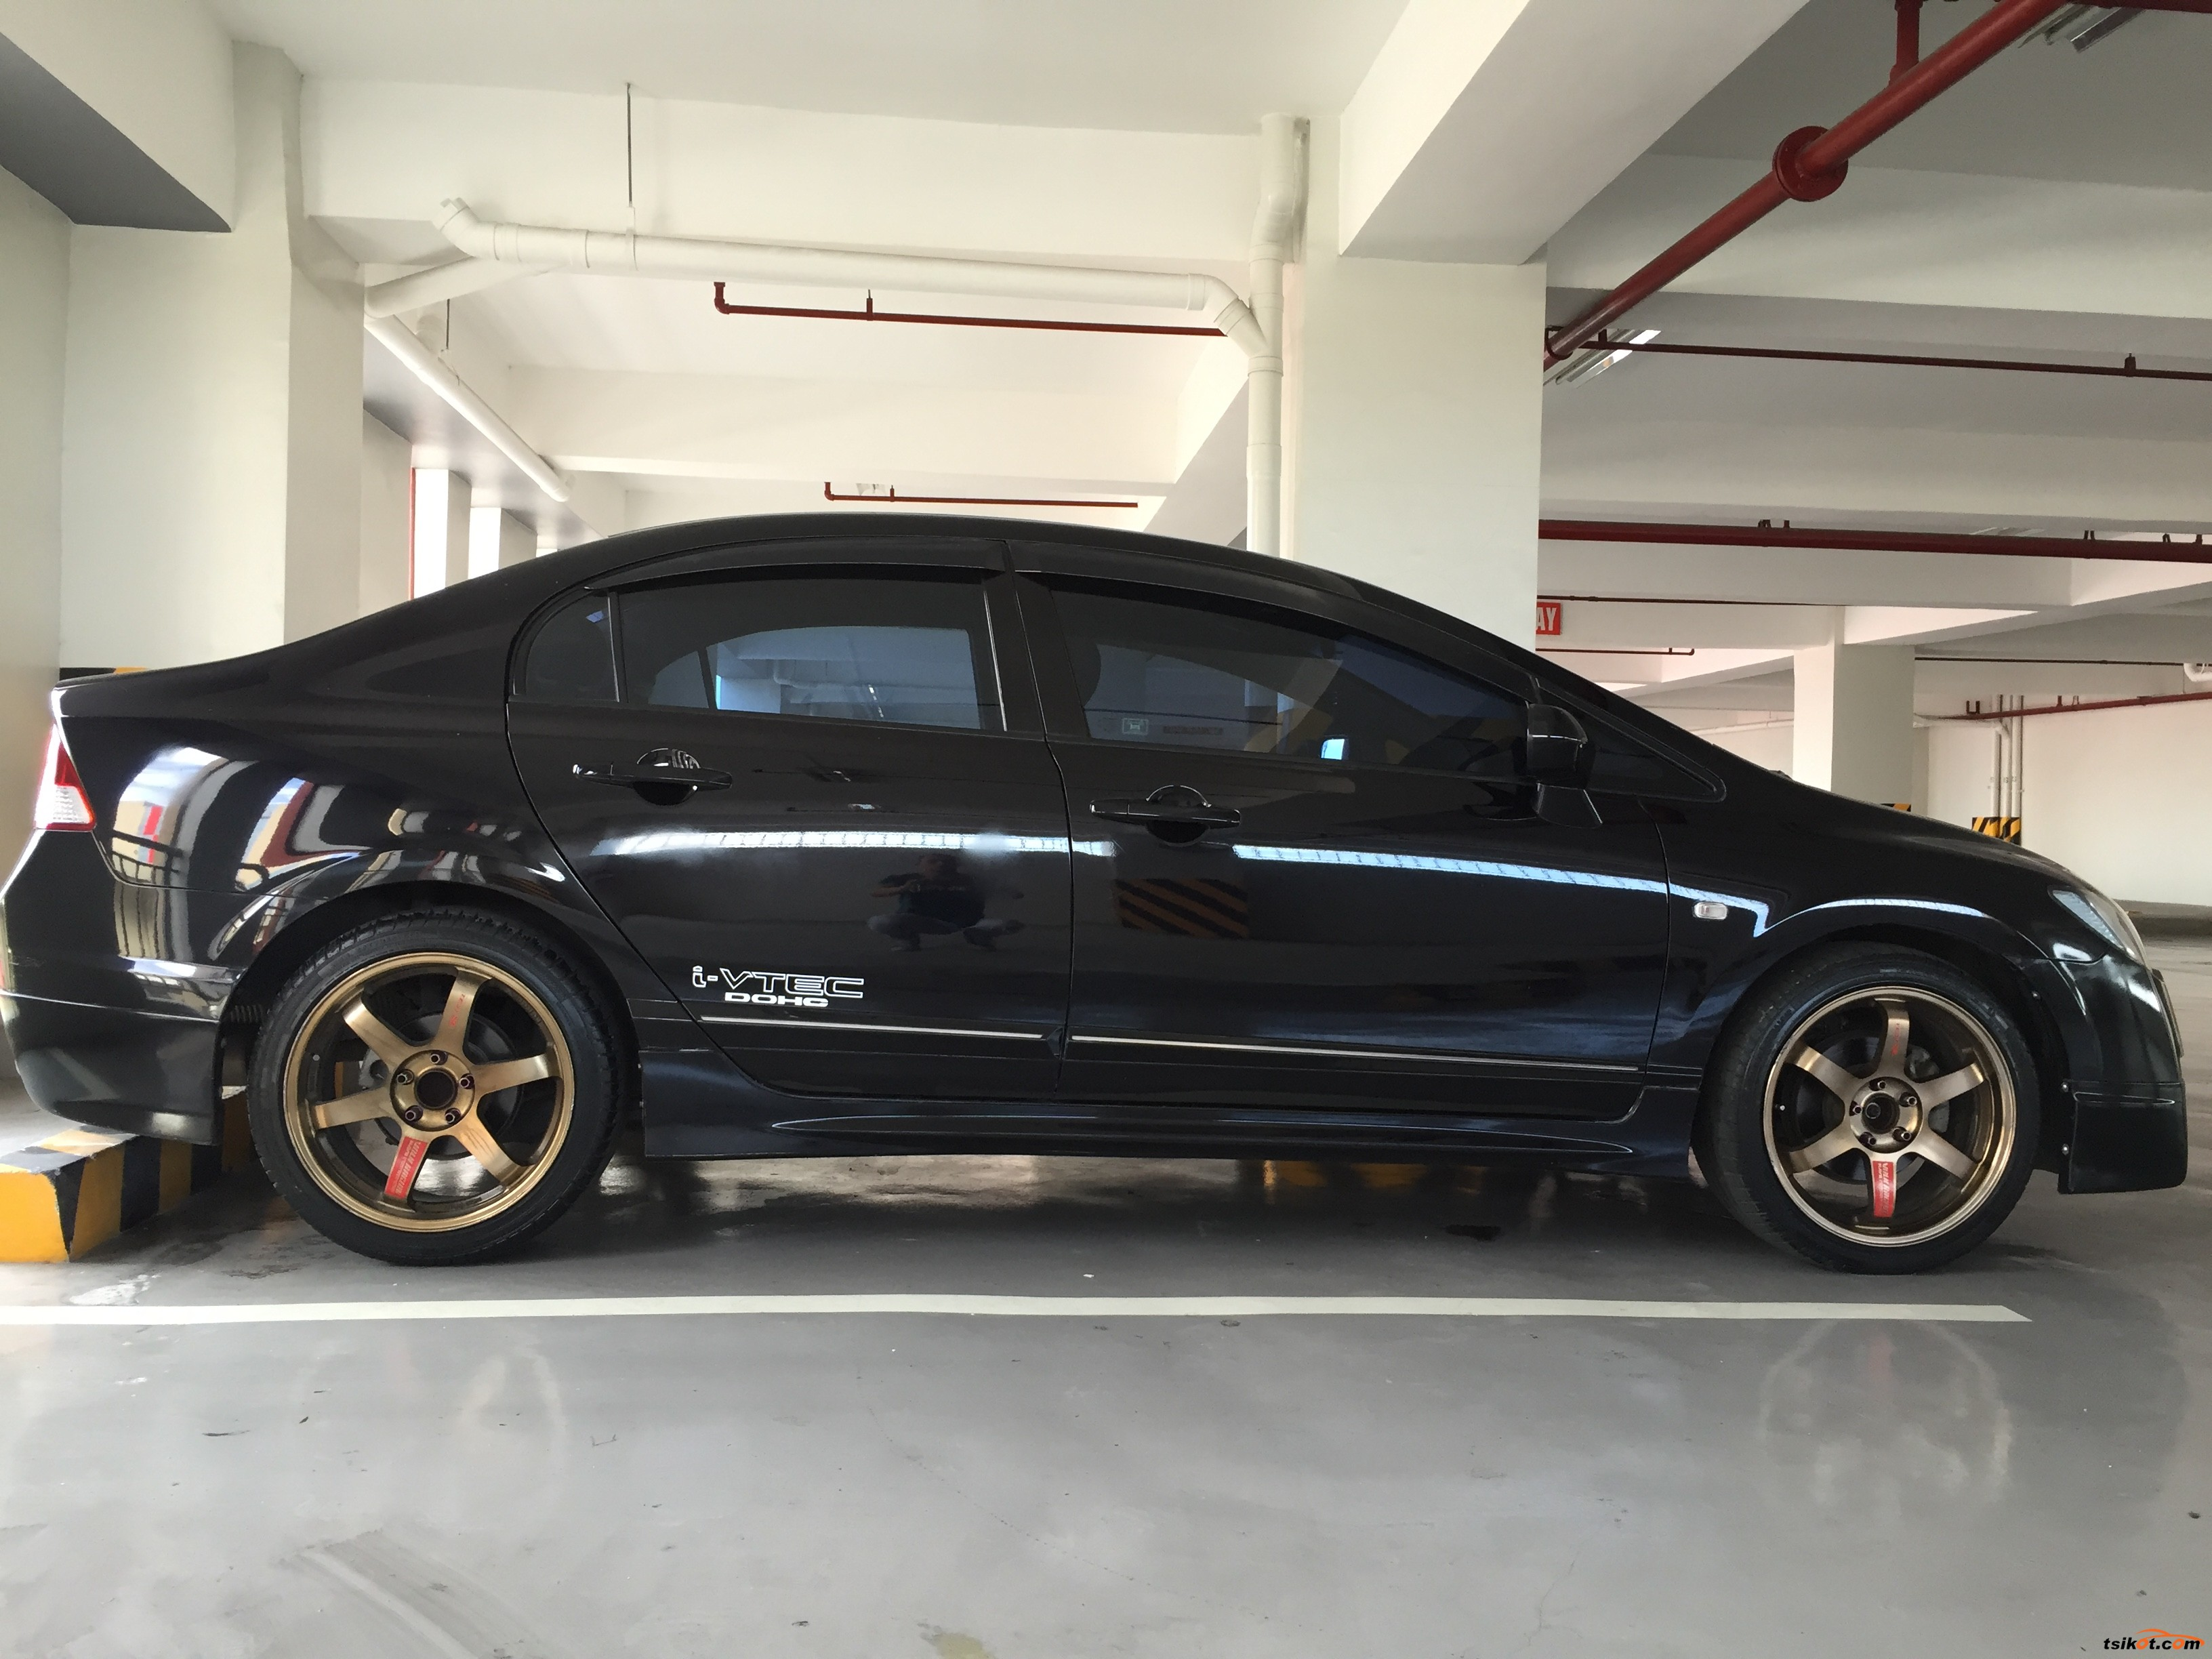 honda civic 2008 car for sale metro manila. Black Bedroom Furniture Sets. Home Design Ideas